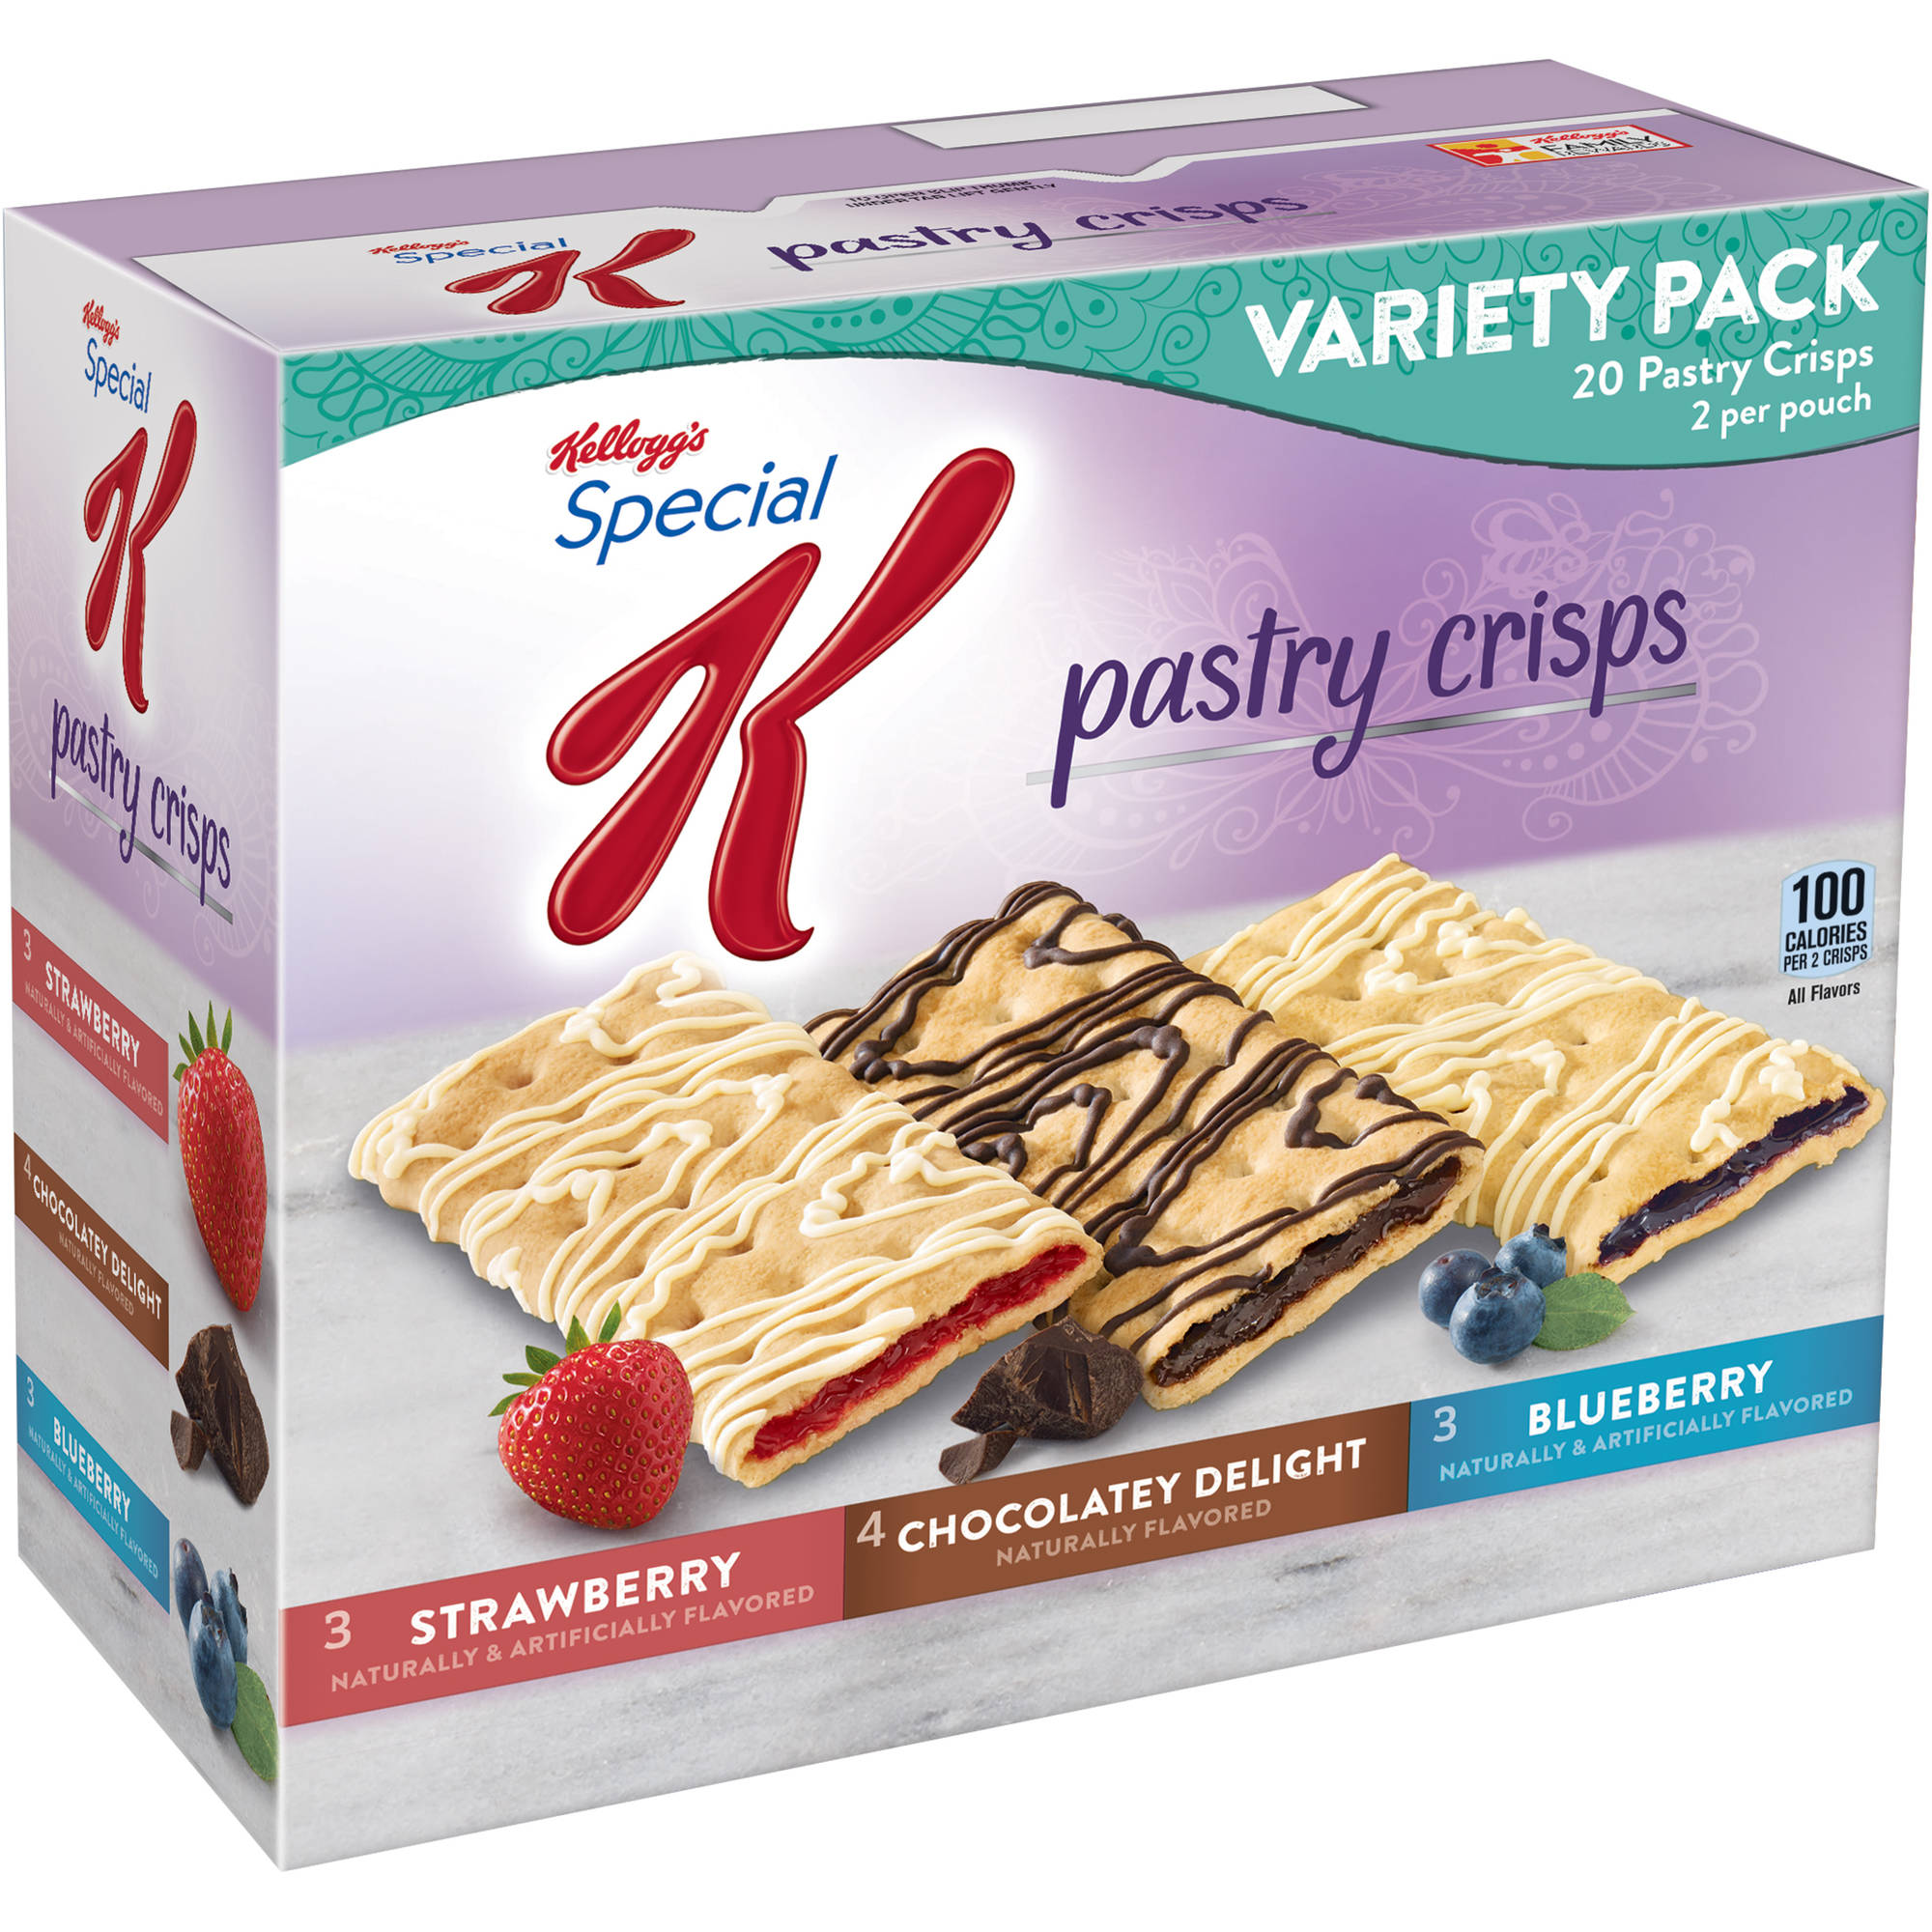 Kellogg's Special K Pastry Crisps Variety Pack, 0.88 oz, 10 count